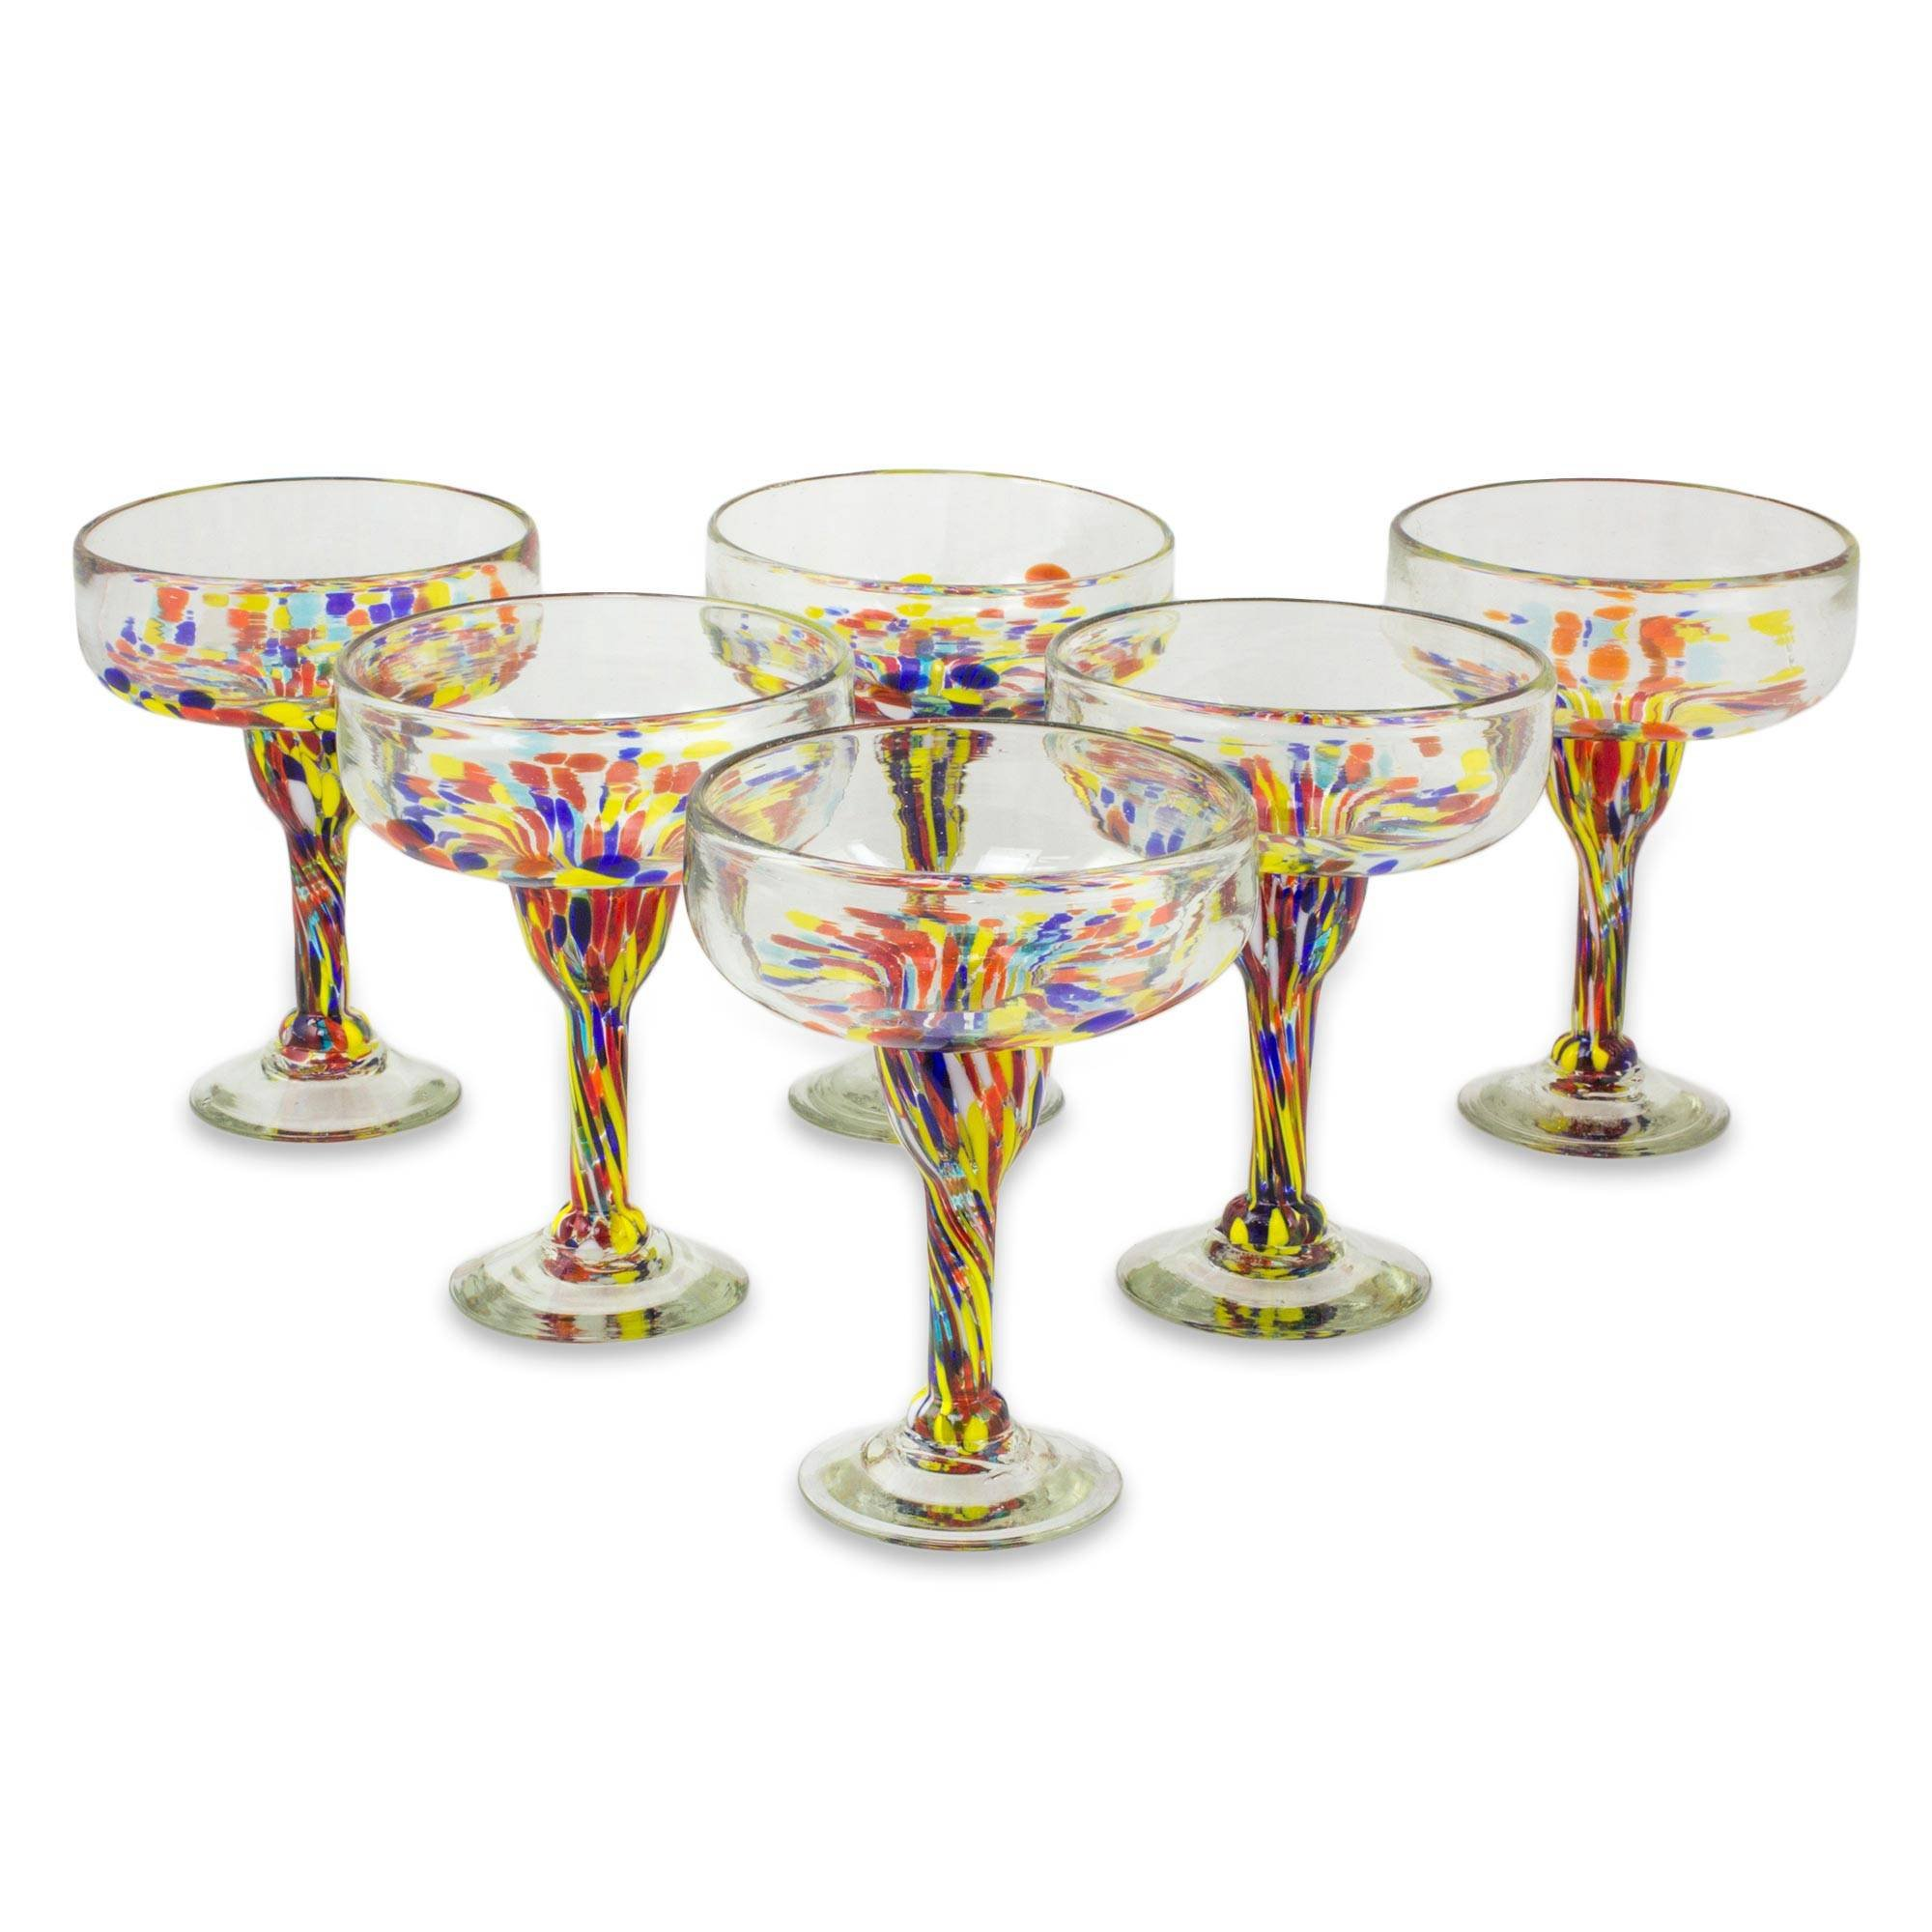 NOVICA 251970 Confetti Festival Blown Margarita Glasses, 7 inch Tall Clear, 13 oz. (Set of 6) by NOVICA